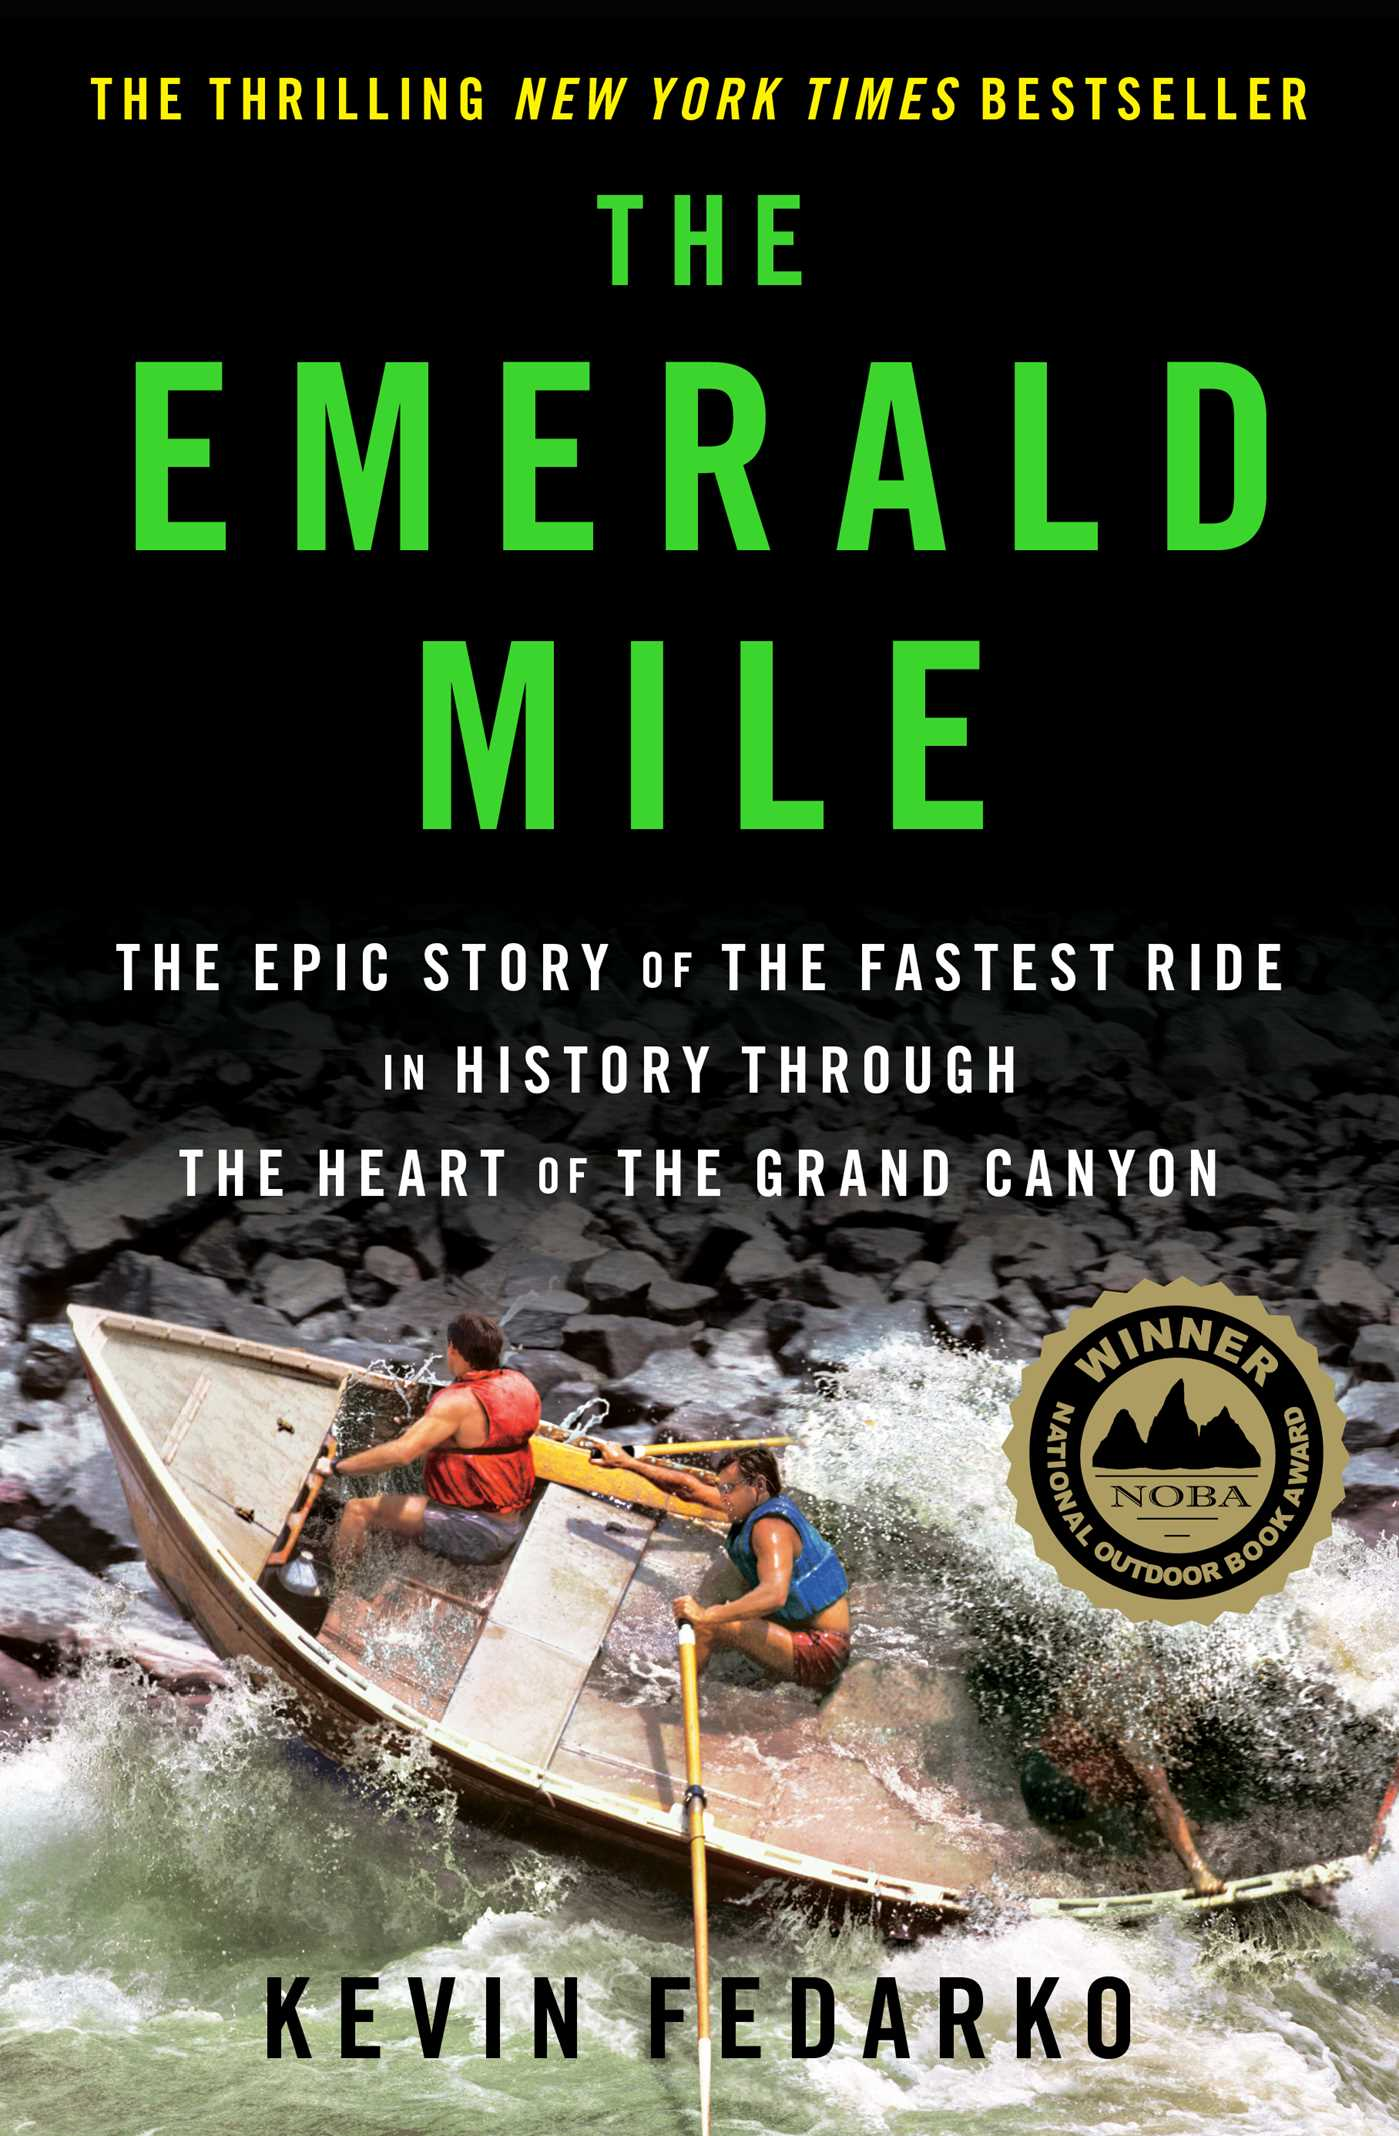 Emerald mile 9781439159859 hr